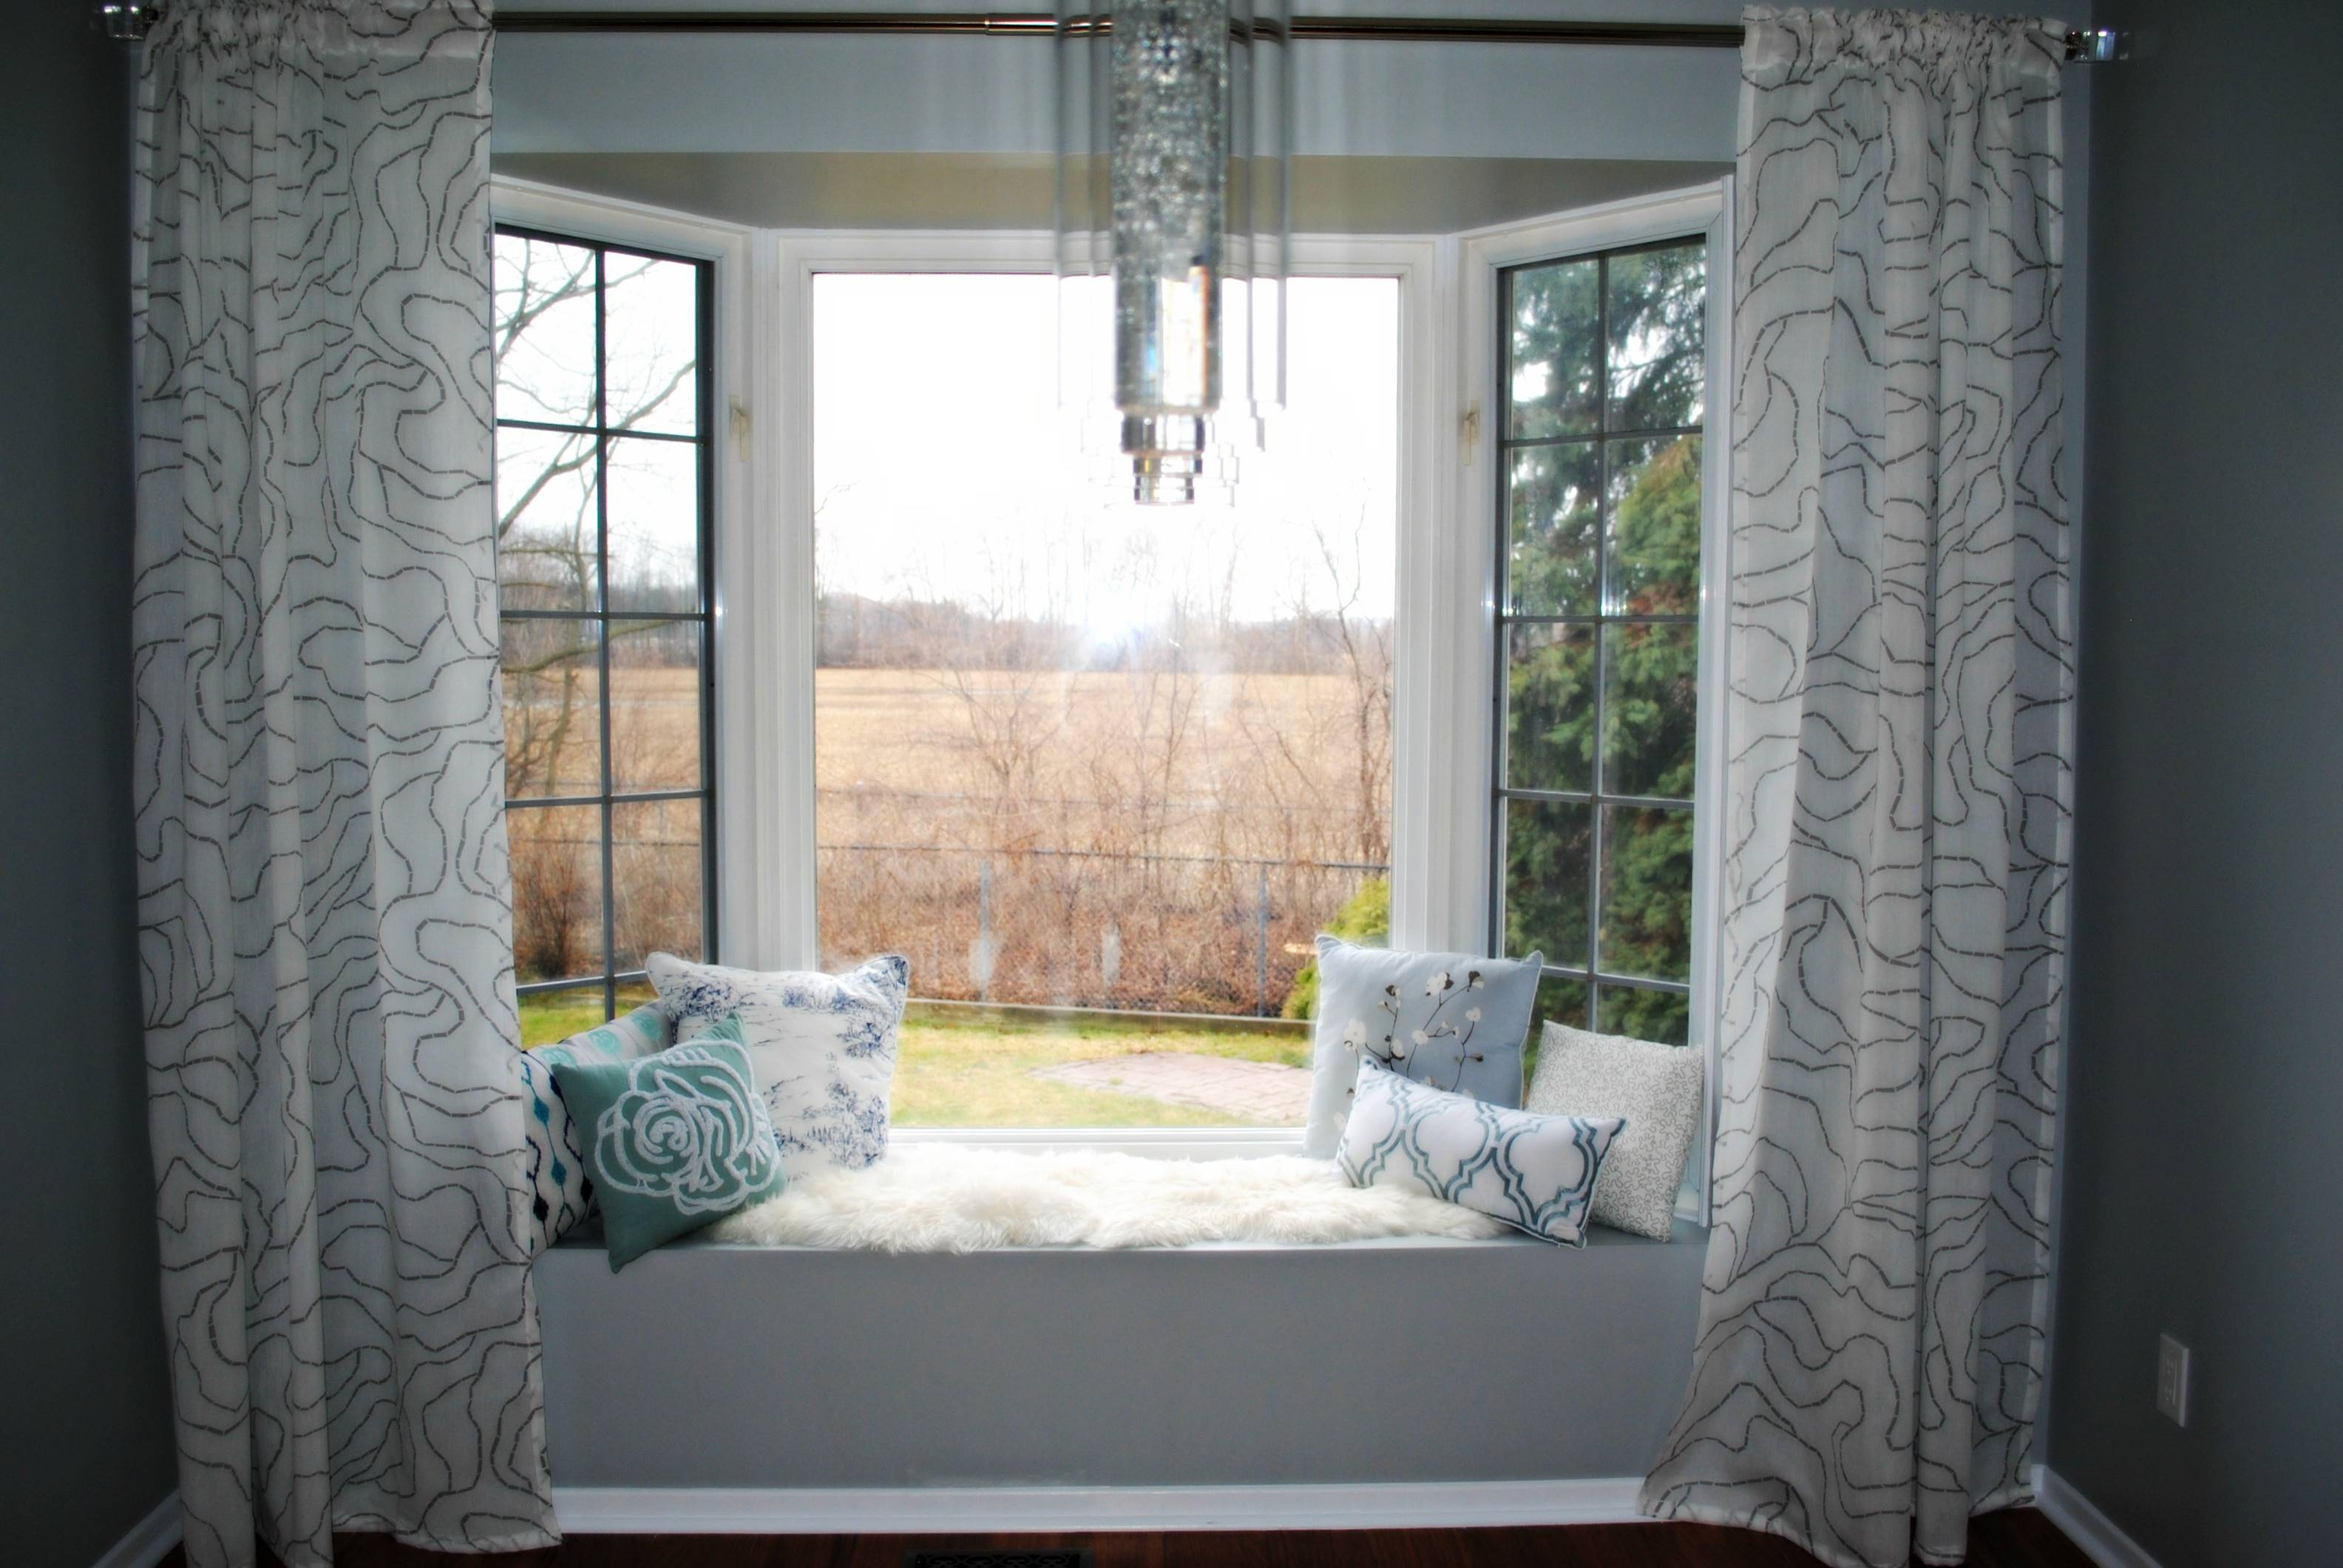 bay window window treatment ideas inspirational living room beautiful window treatment ideas for living of bay window window treatment ideas